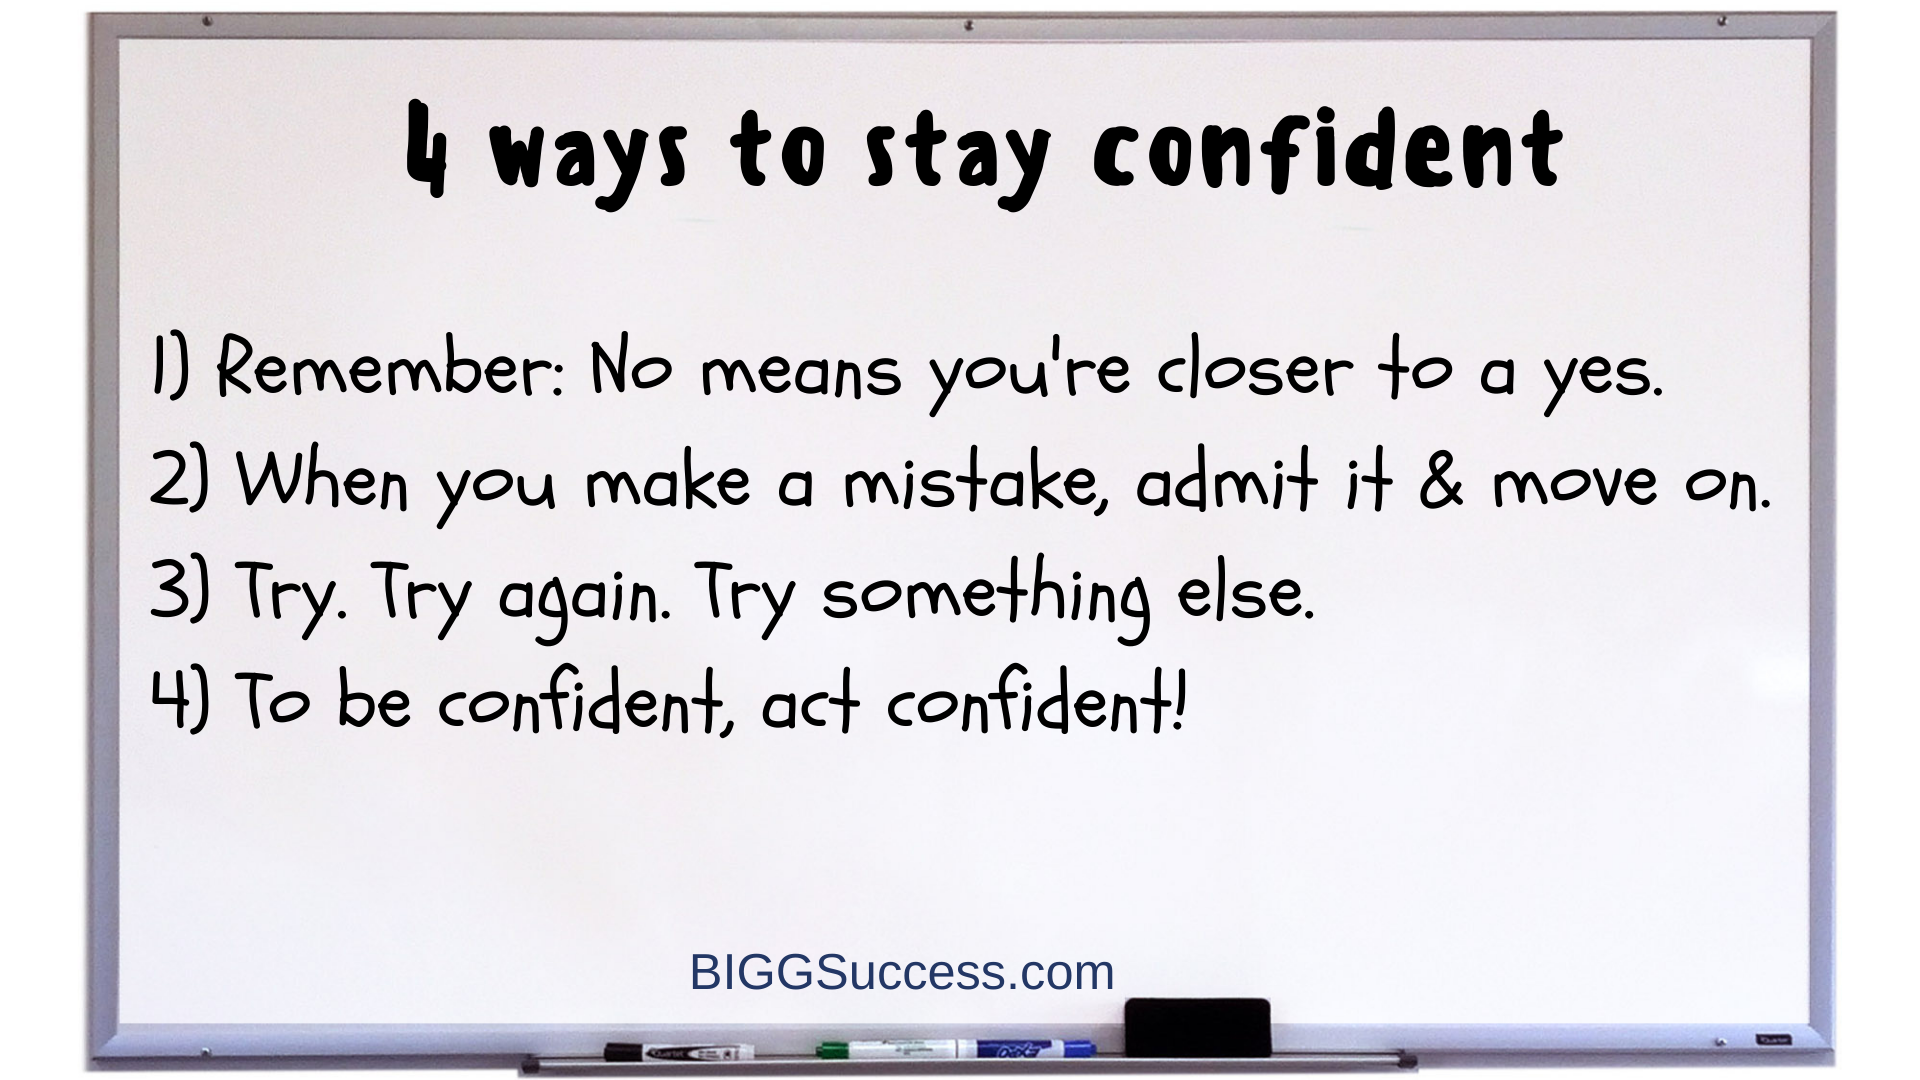 Stay confident whiteboard